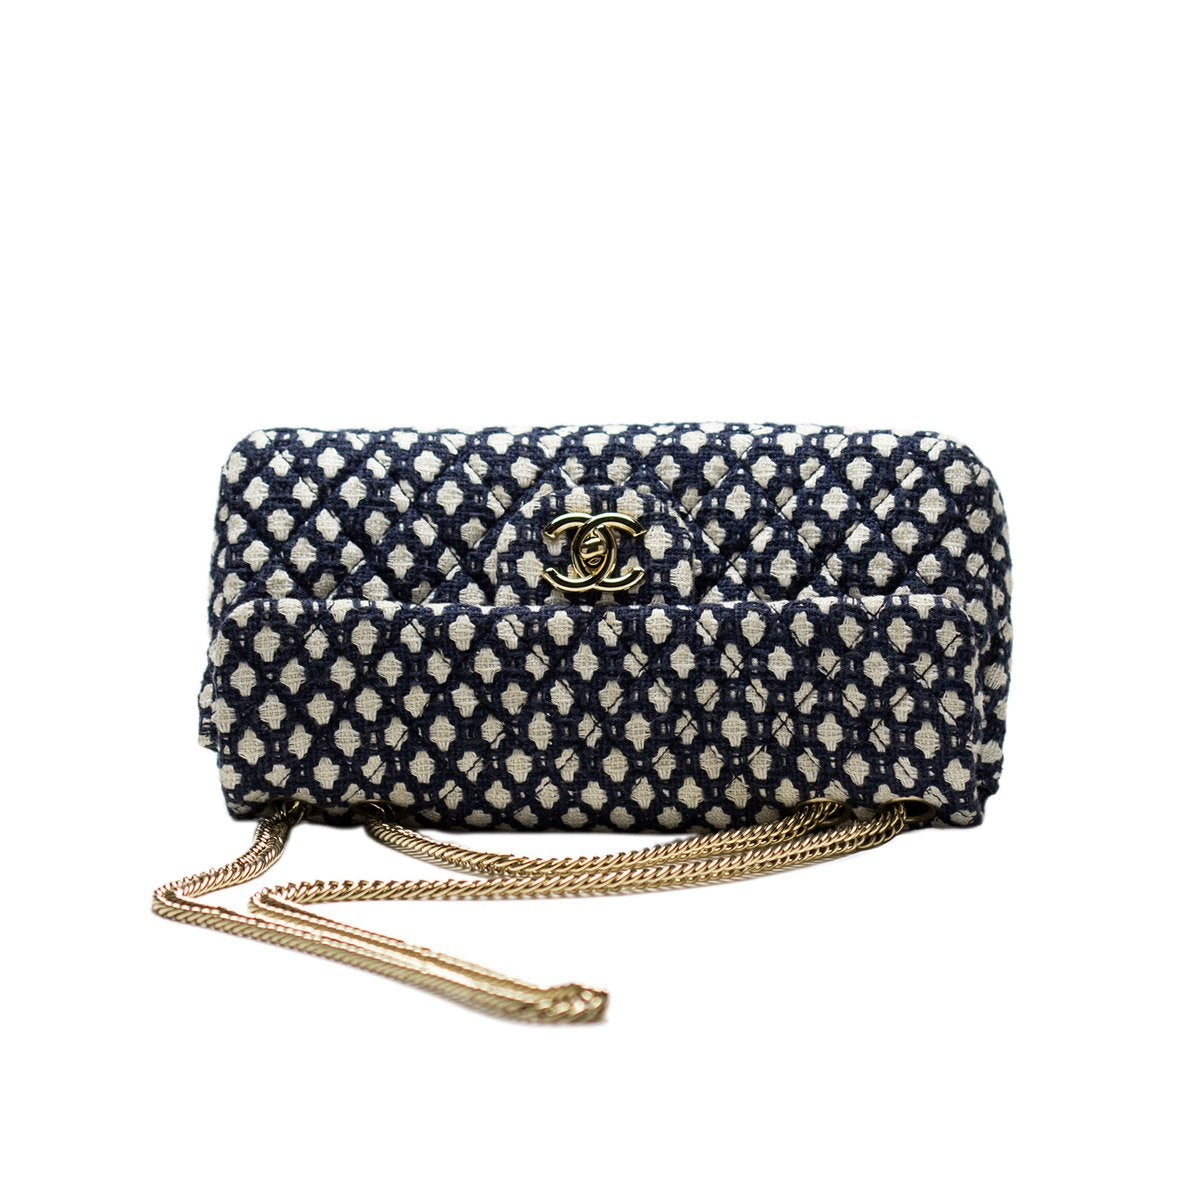 Chanel Navy Vintage Blue and White Tweed Cotton Flap